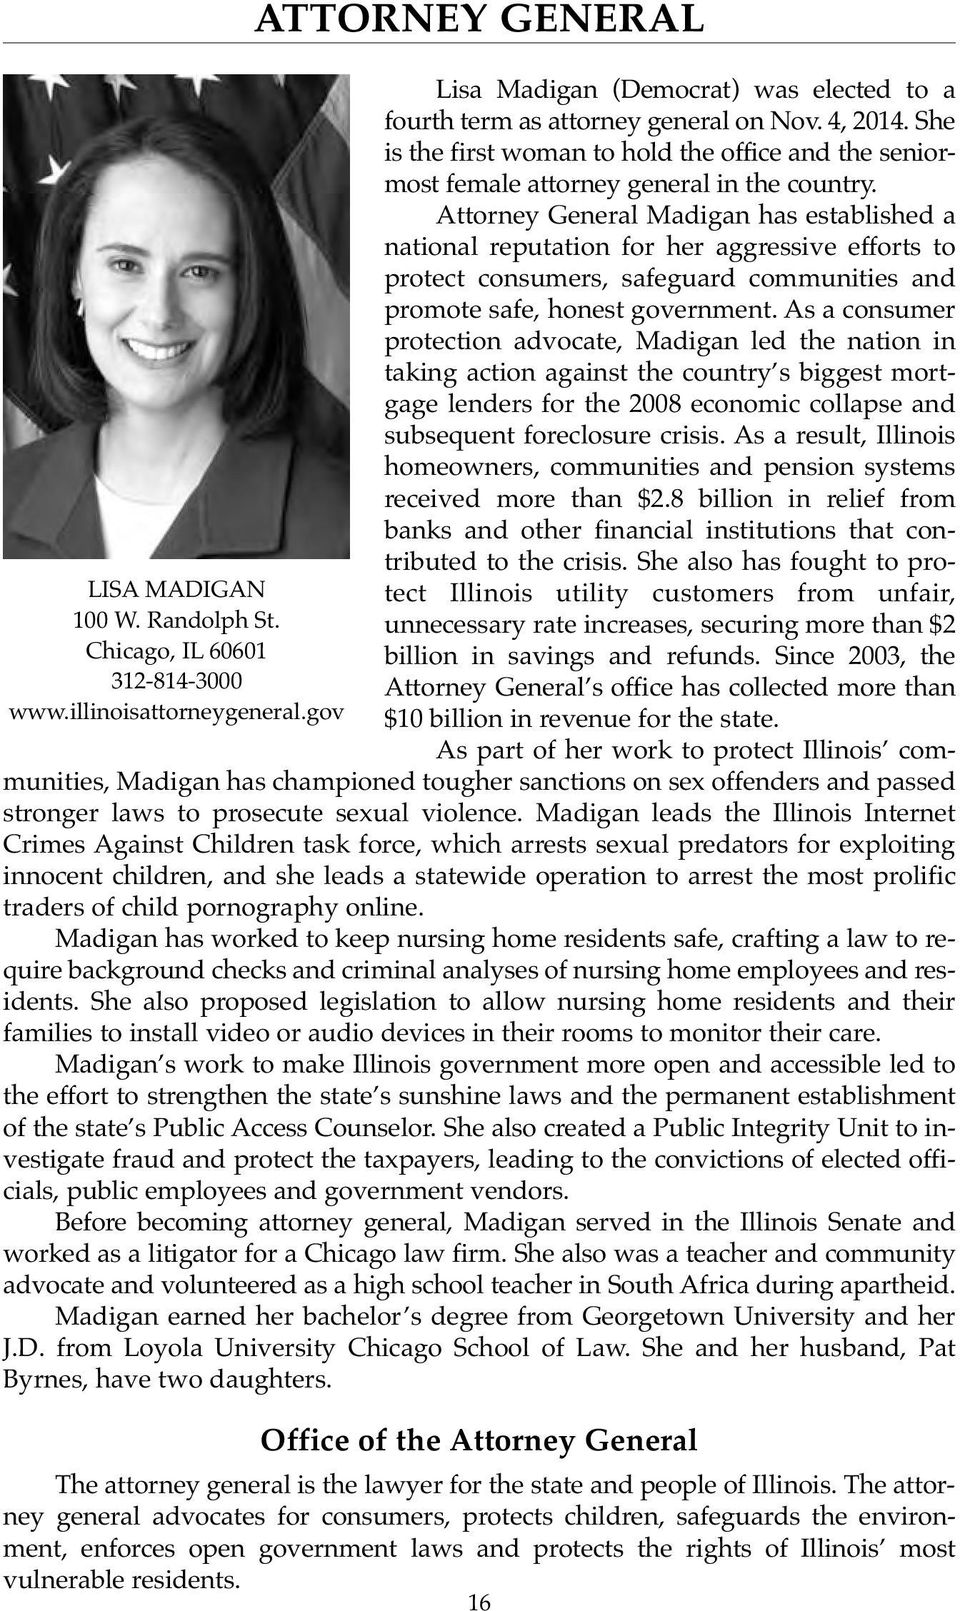 Attorney General Madigan has established a national reputation for her aggressive efforts to protect consumers, safeguard communities and promote safe, honest government.